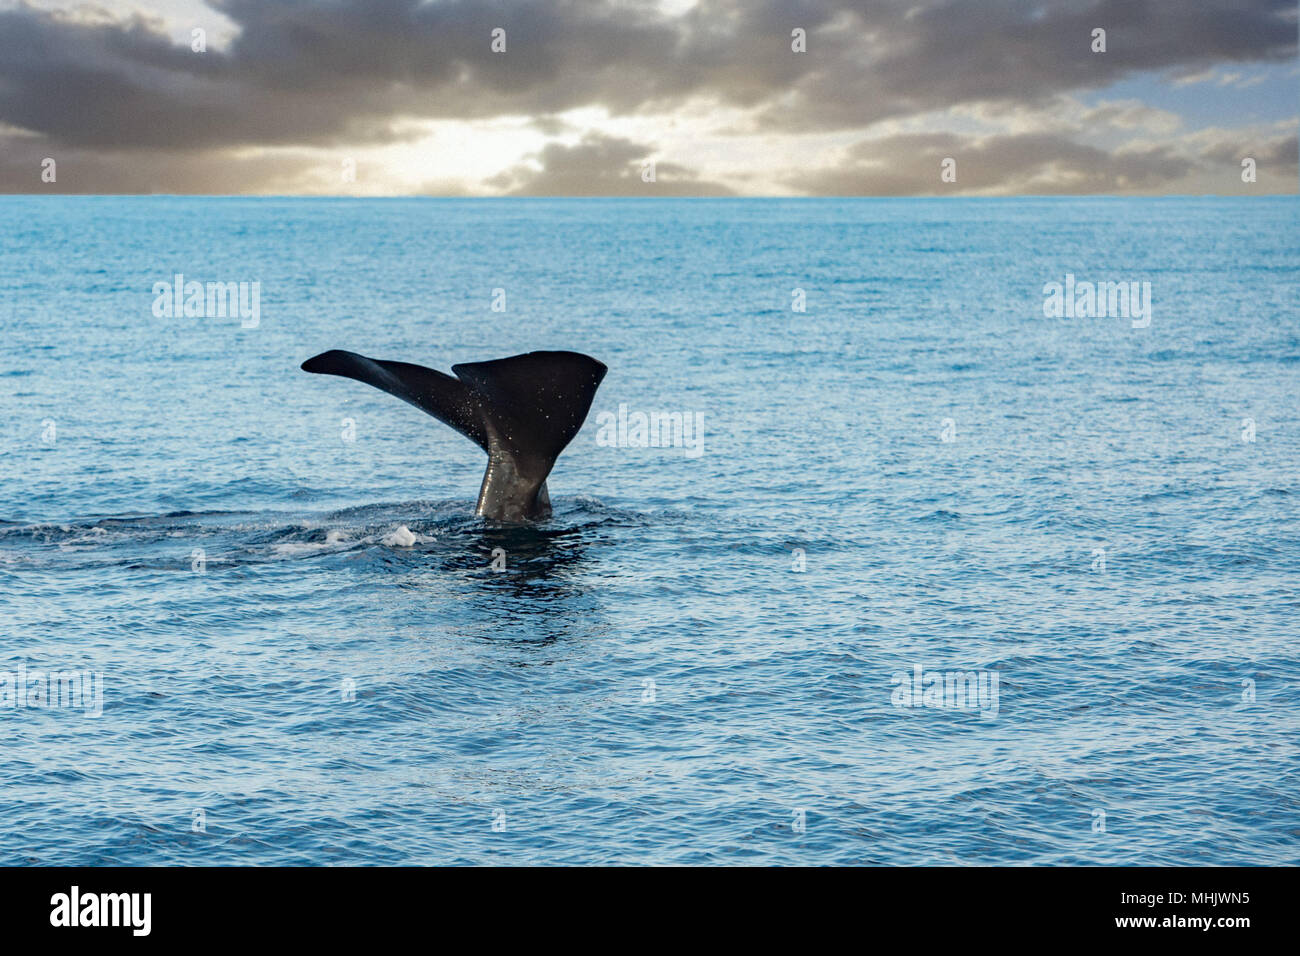 Sperm whale tail on sunset sky background Stock Photo